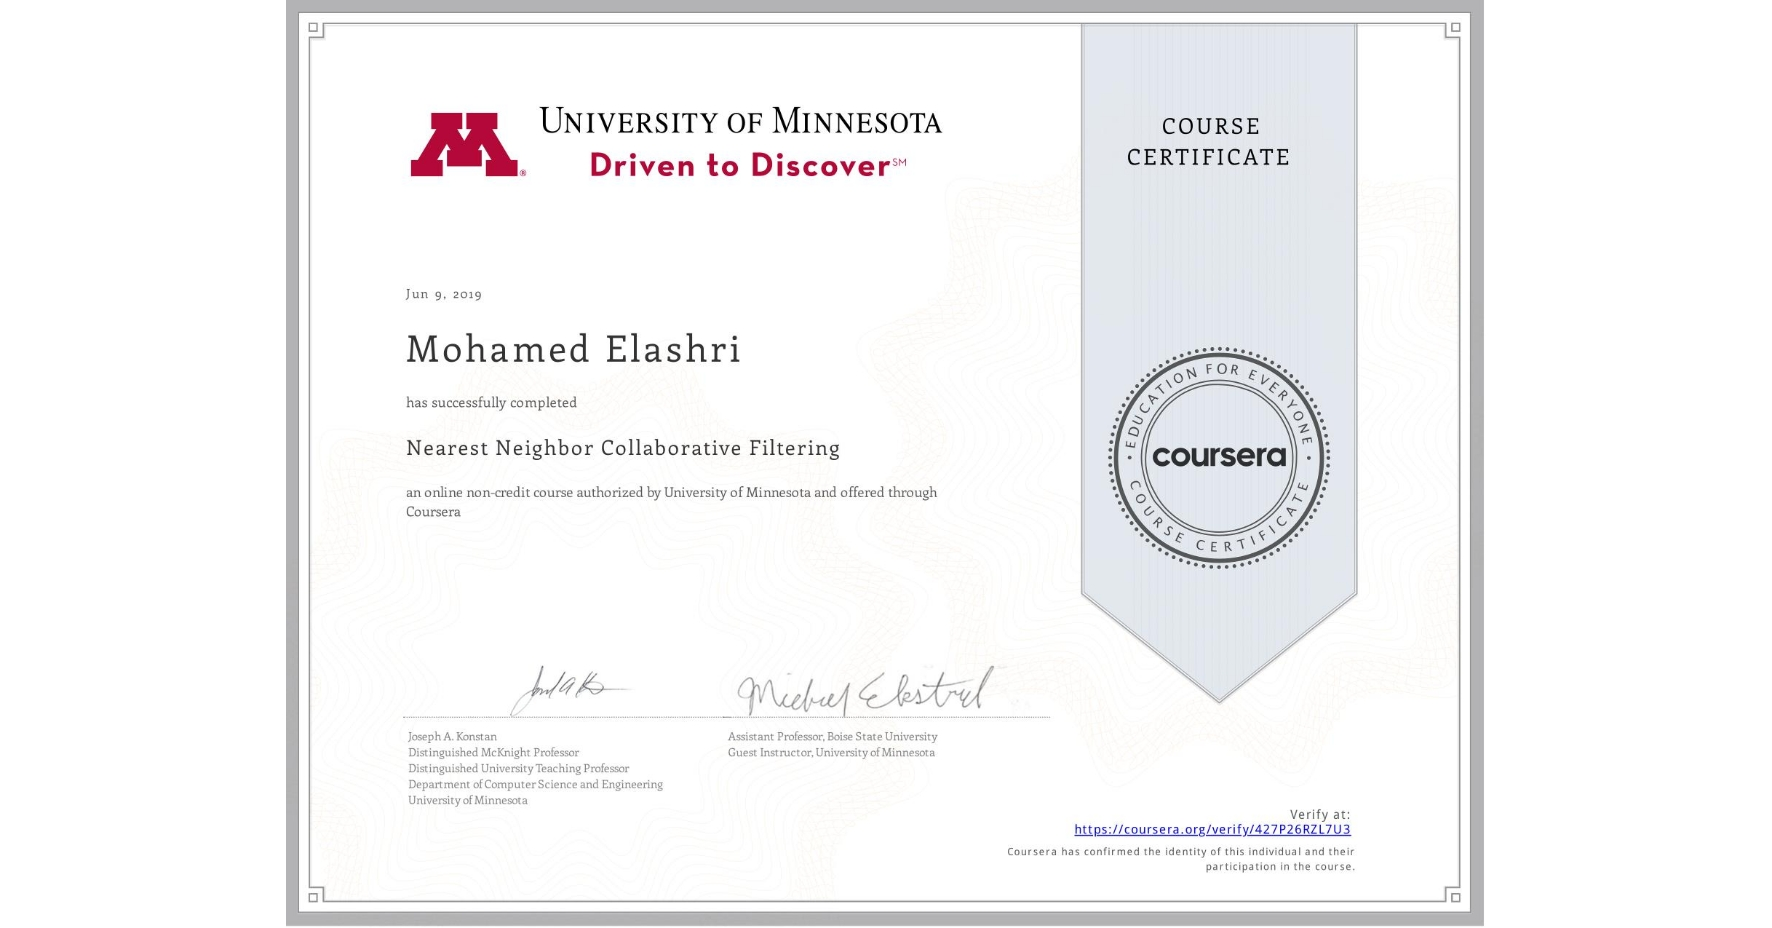 View certificate for Mohamed Elashri, Nearest Neighbor Collaborative Filtering, an online non-credit course authorized by University of Minnesota and offered through Coursera